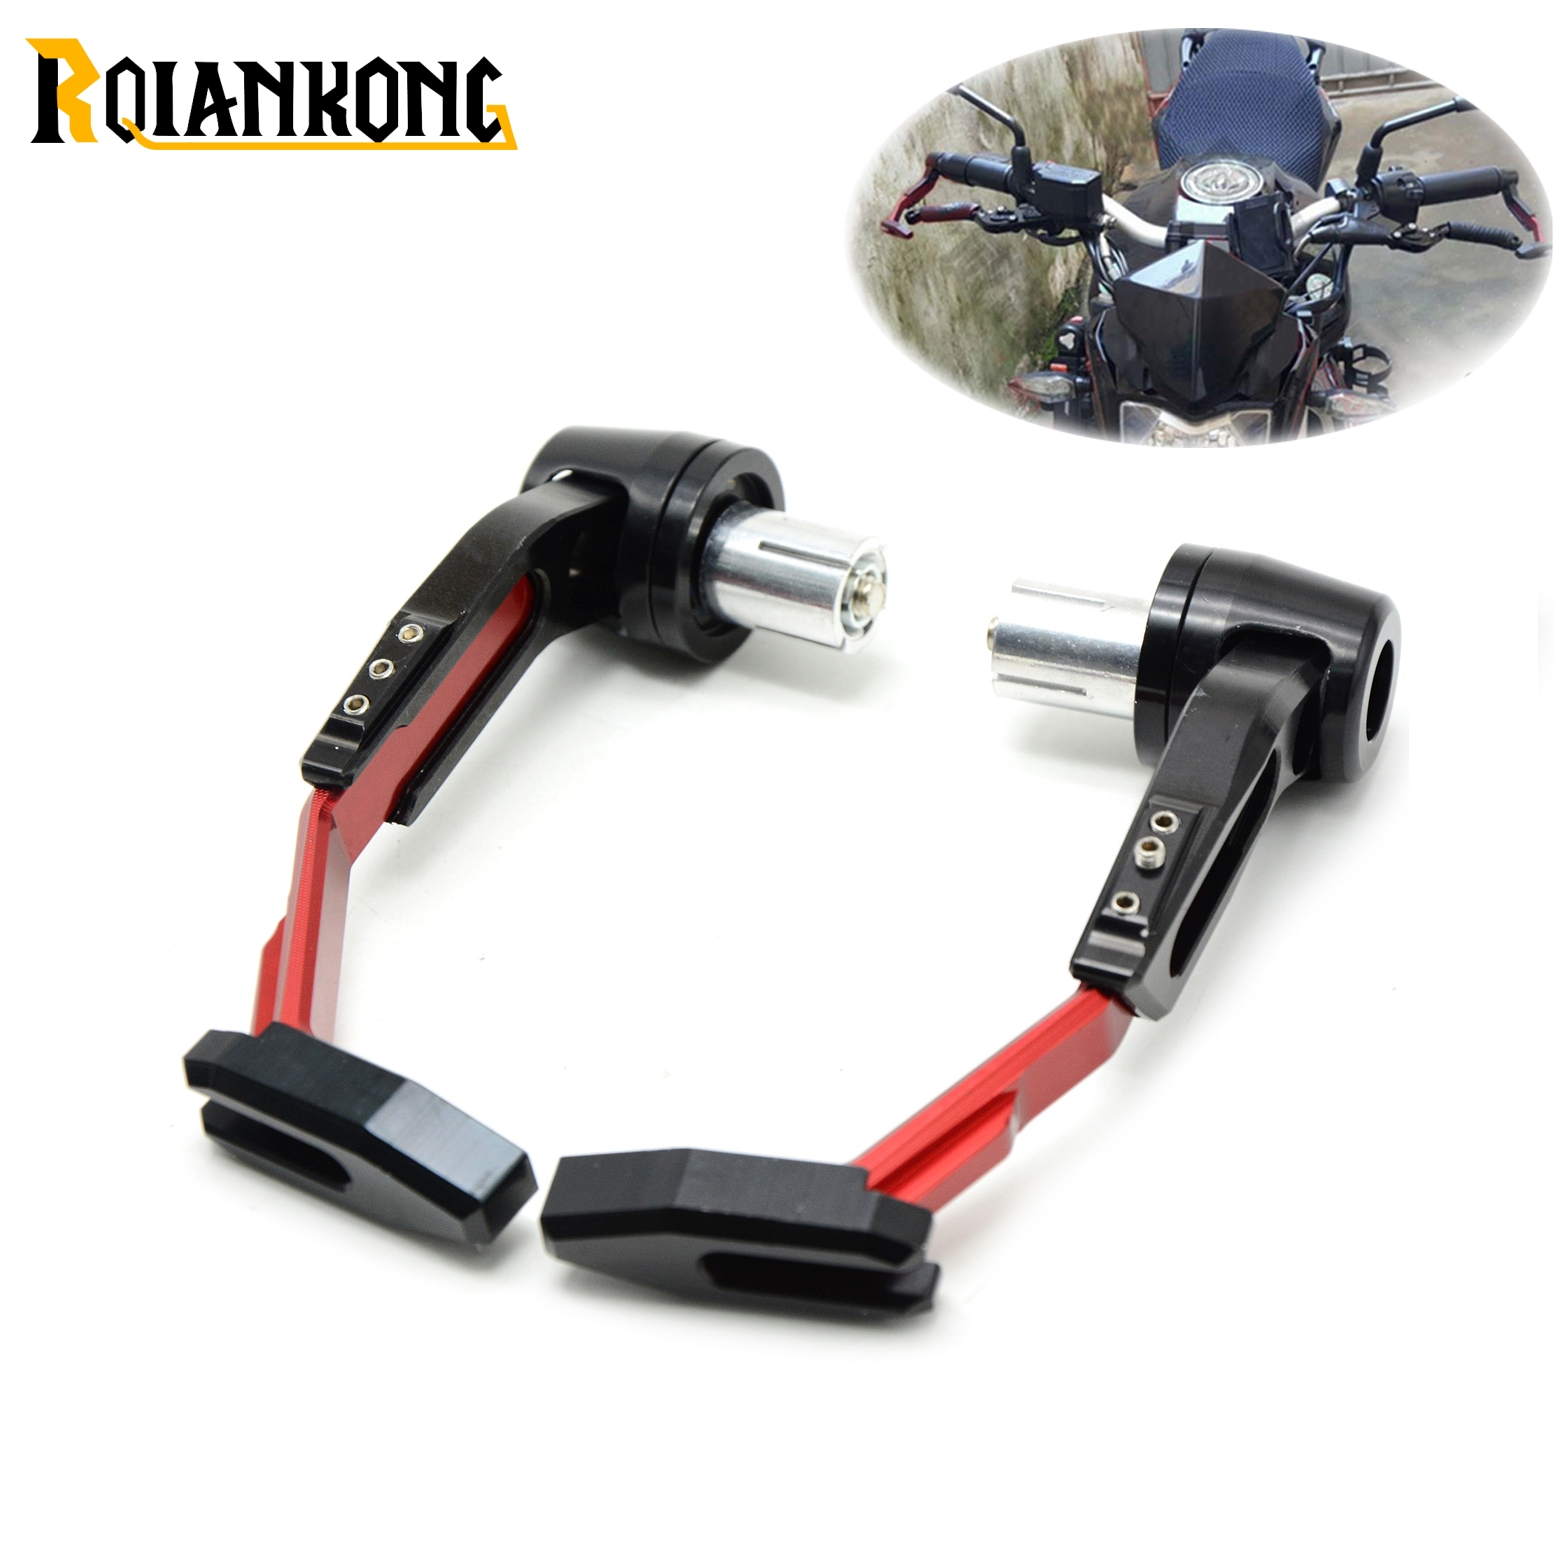 Universal 7/822mm Motorcycle Handlebar Clutch Brake Lever Protect Guard for BMW HP2 Enduro HP2 Megamoto HP2 C600 C650 Sport bjmoto universal 7 8 22mm handlebar brake clutch protect motorcycle lever guard proguard for bmw hp4 r1200rs s1000rr k1300gt